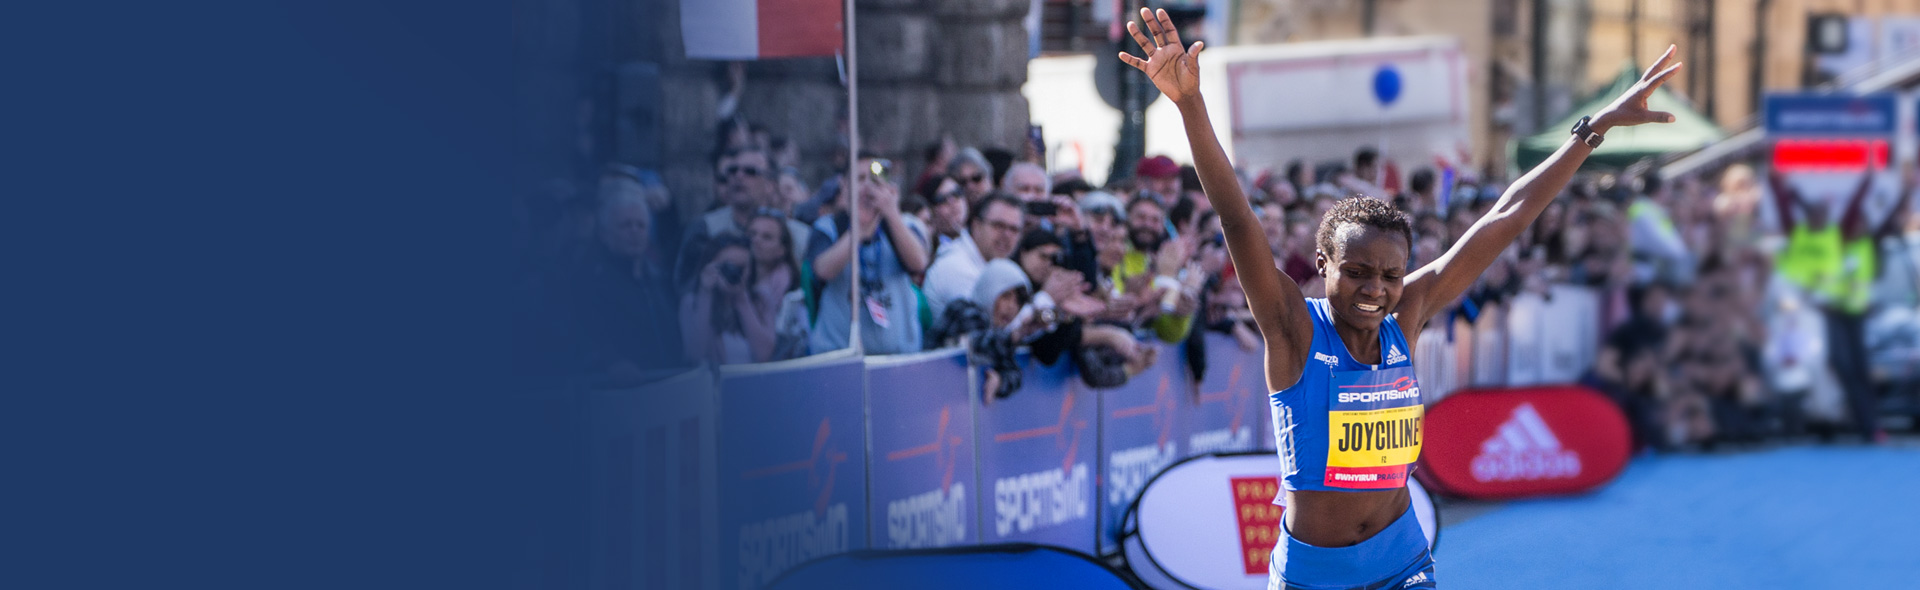 WORLD RECORD set at SPORTISIMO ½ Marathon. And it happened four times!